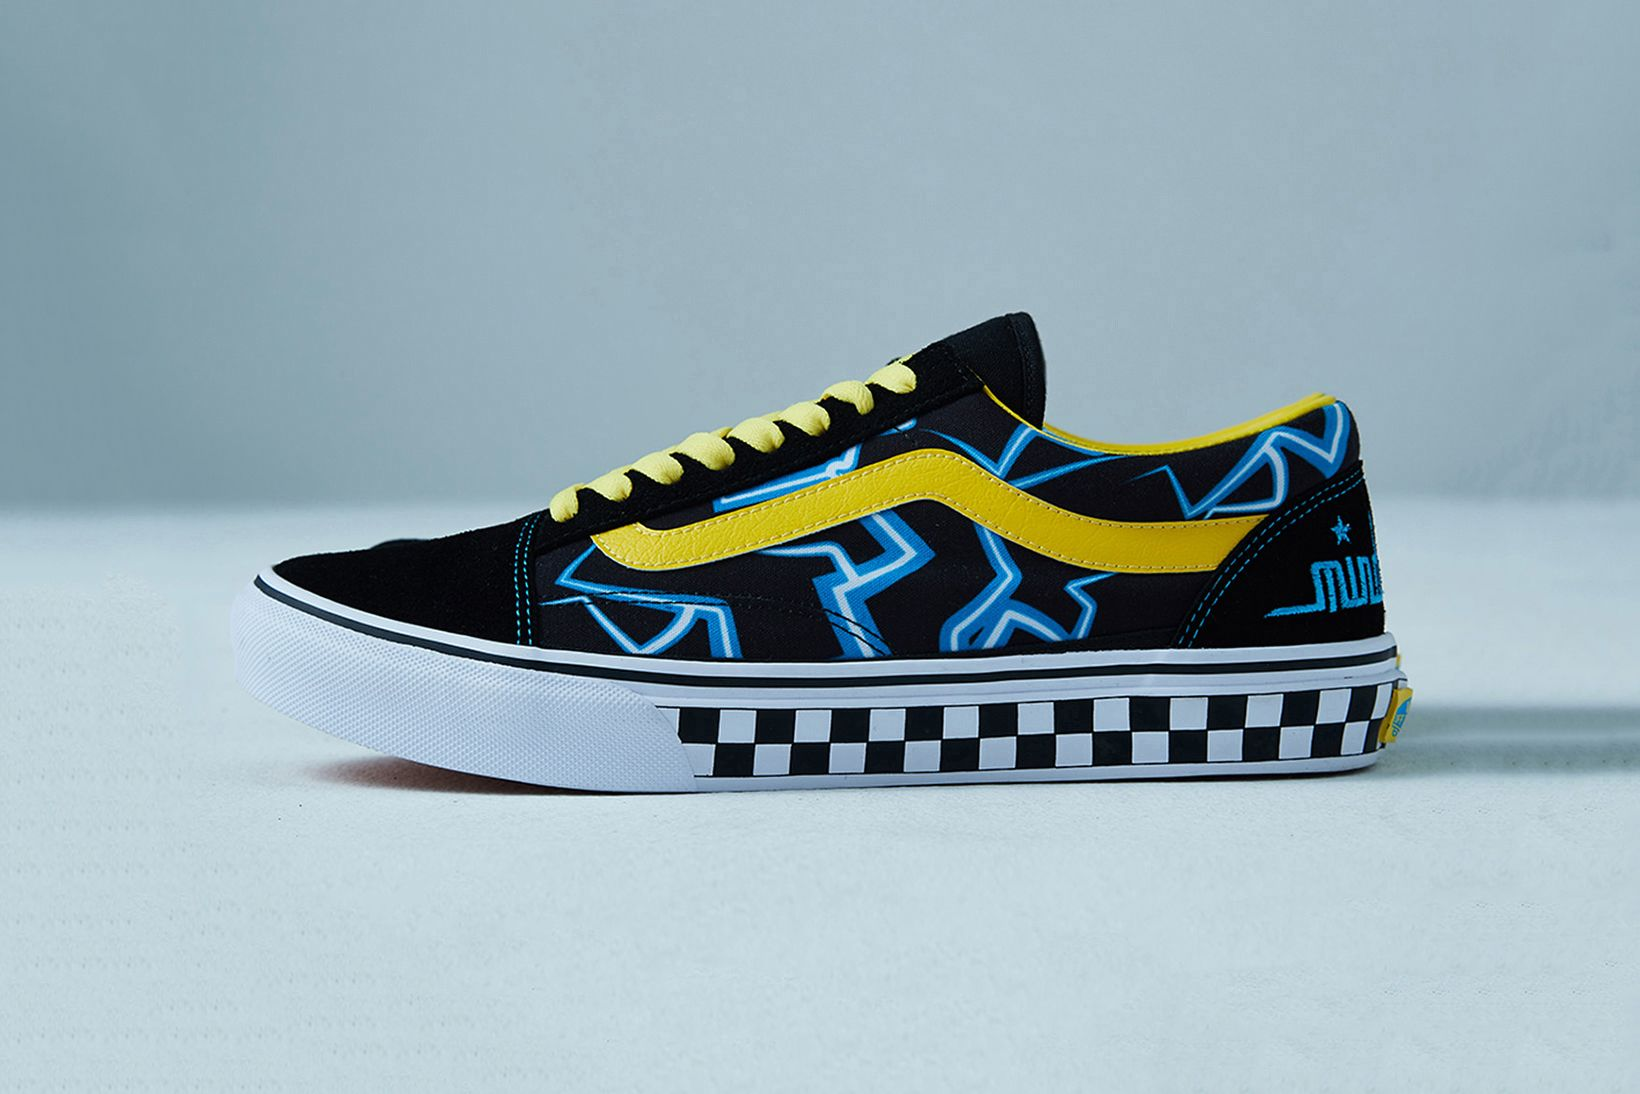 49476574aa48 mindseeker   Vans Join Forces For a Head-Turning Old Skool Collab in ...